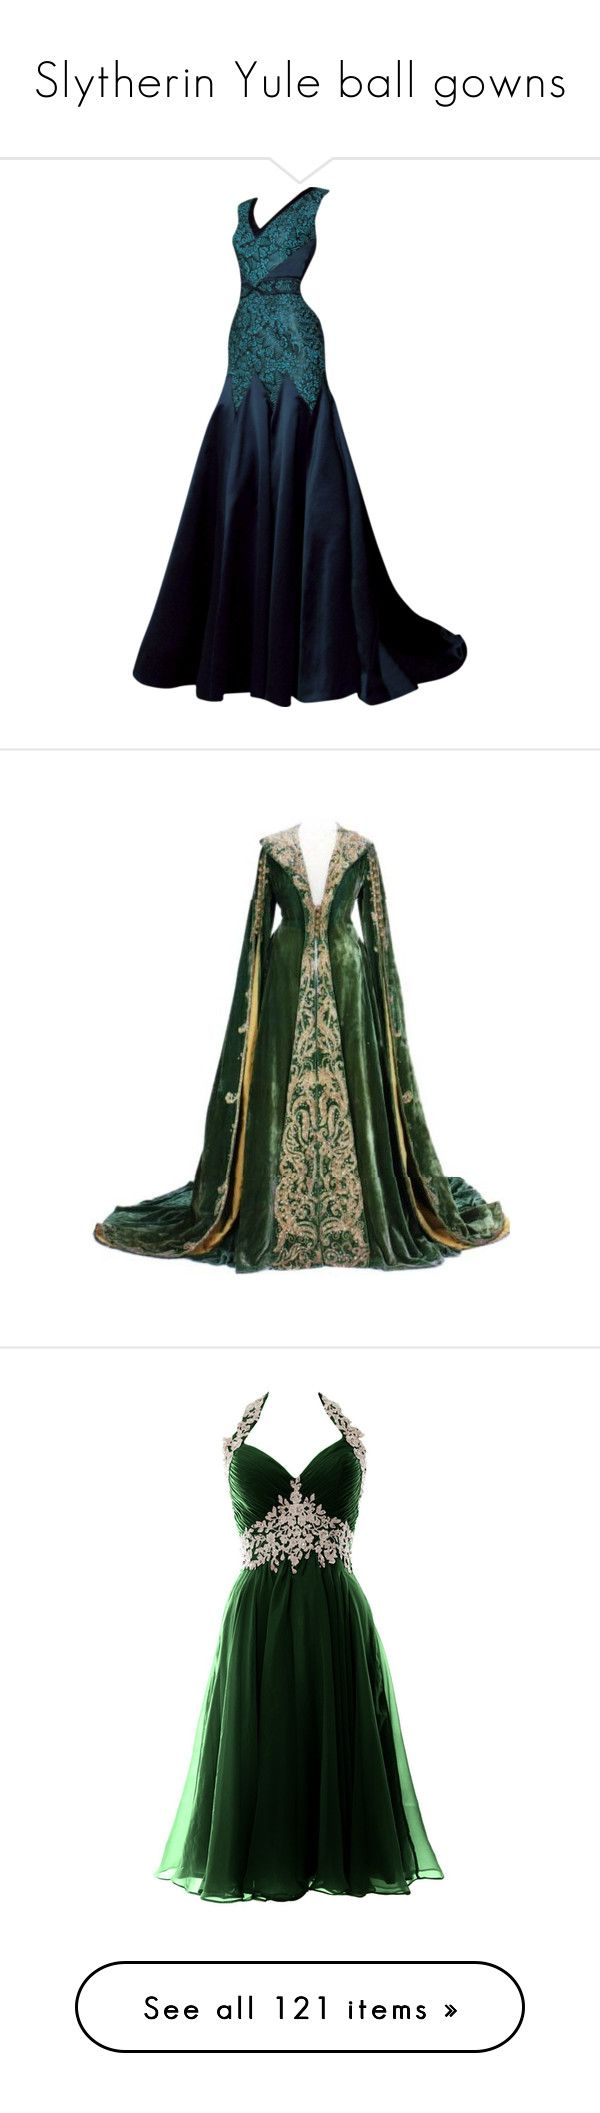 """Slytherin Yule ball gowns"" by weeby ❤ liked on Polyvore featuring dresses, gowns, long dresses, vestidos, blue ball gown, long blue evening dress, blue dress, blue gown, medieval and costume"